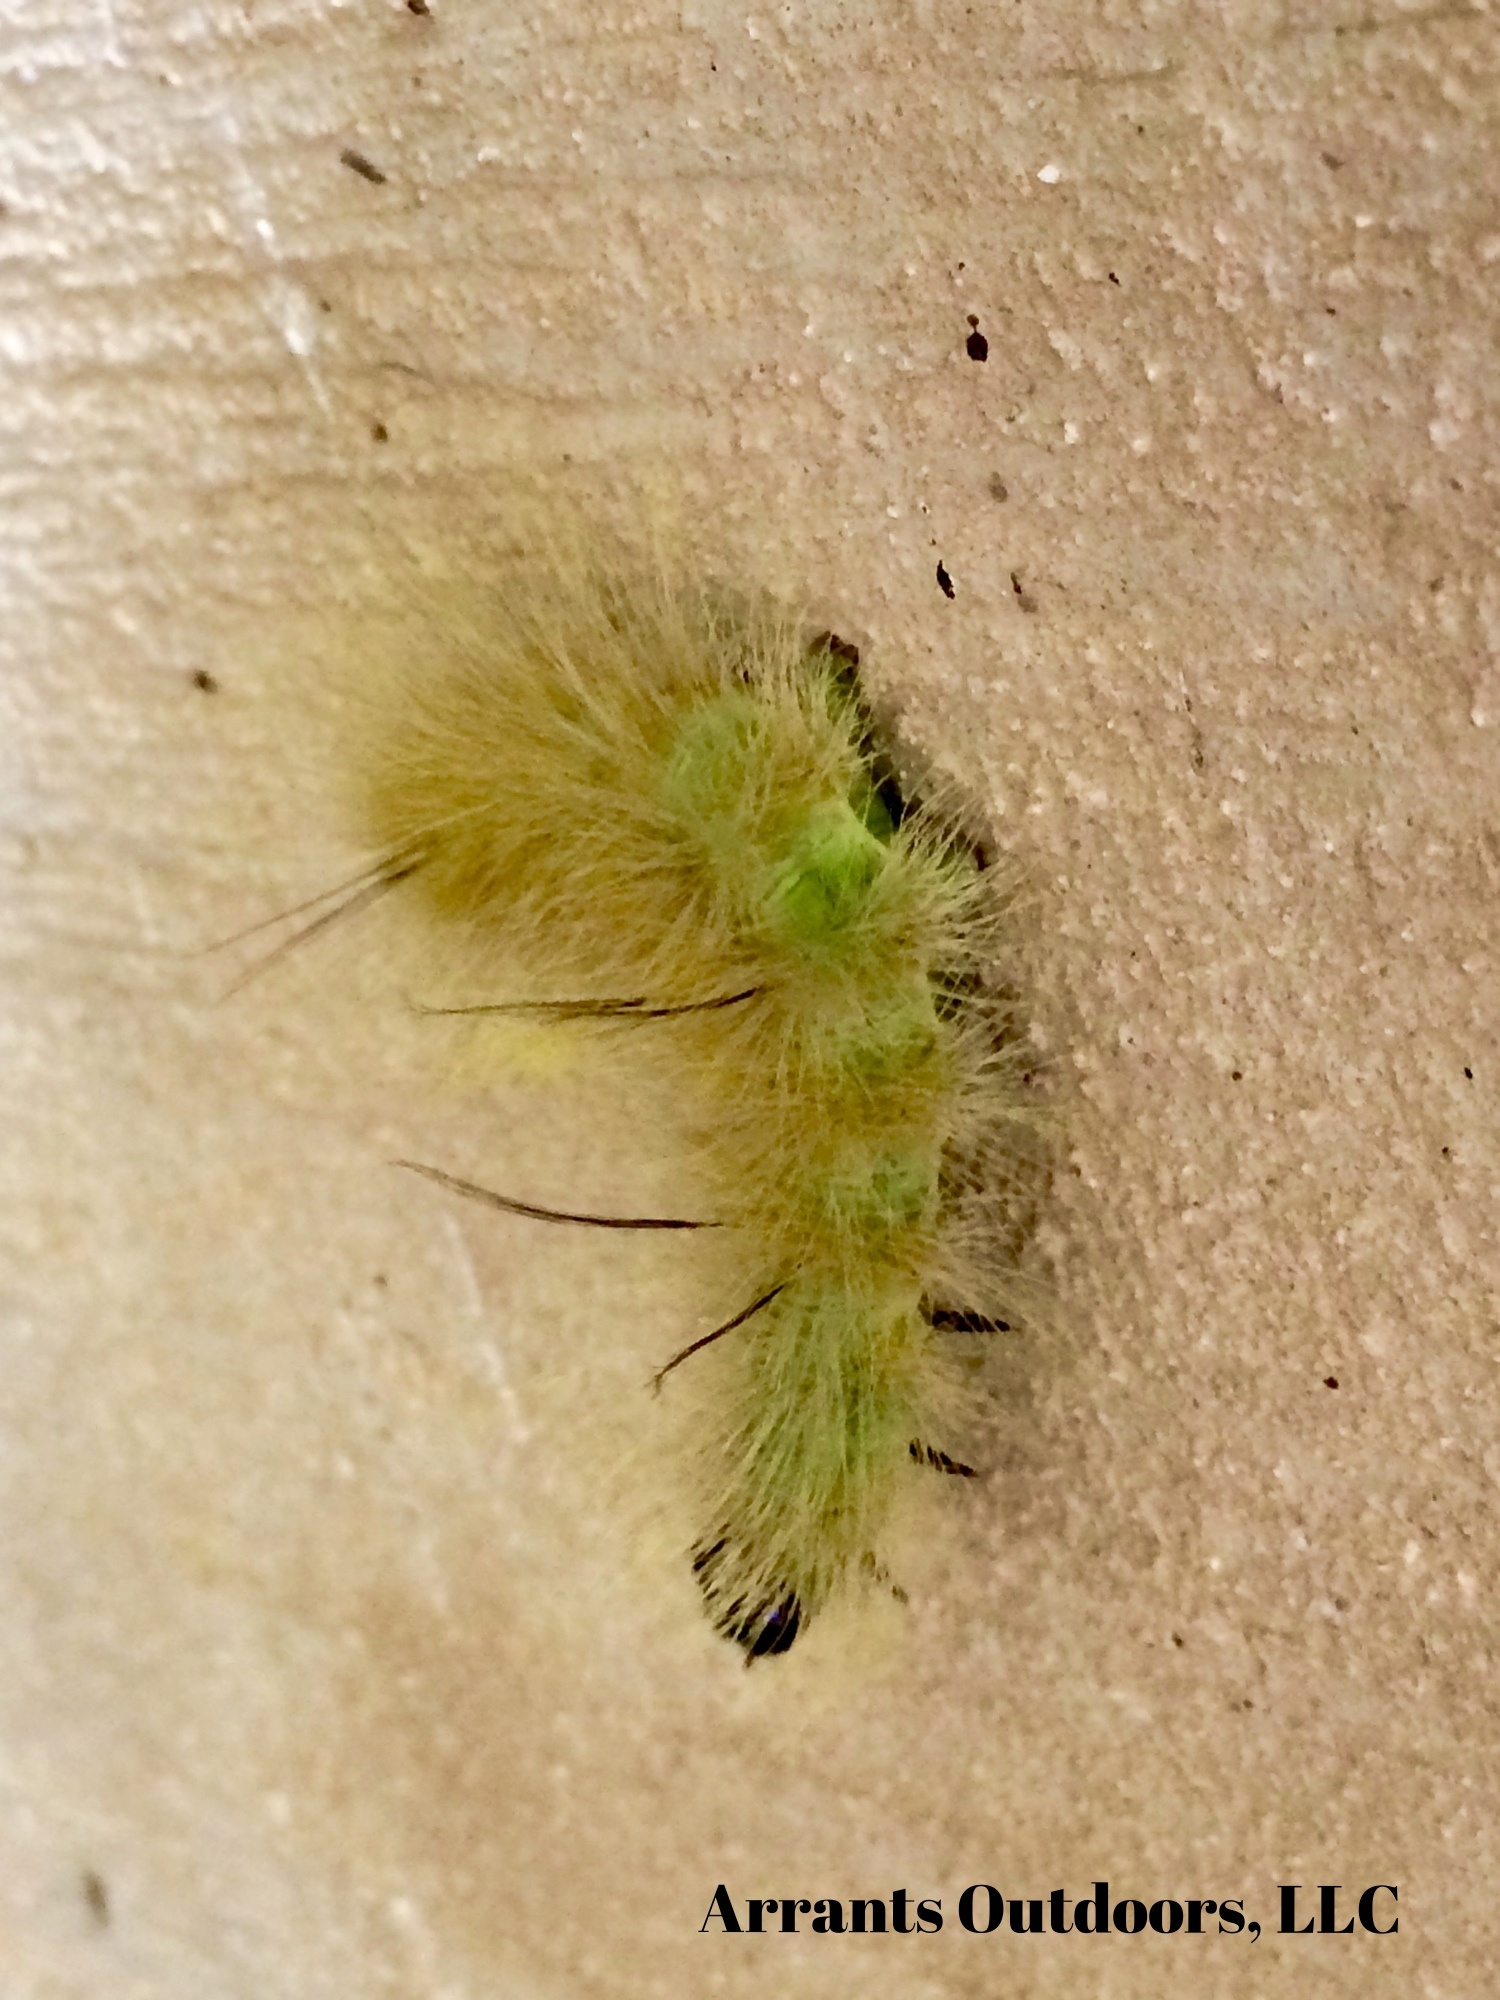 Notice the black tufts, pairs beginning at A1, then A3 and the single tuft at A8..  When you see that, you can immediately identify this caterpillar as an American Dagger Moth (Acronicta americana) caterpillar. (Click to enlarge)